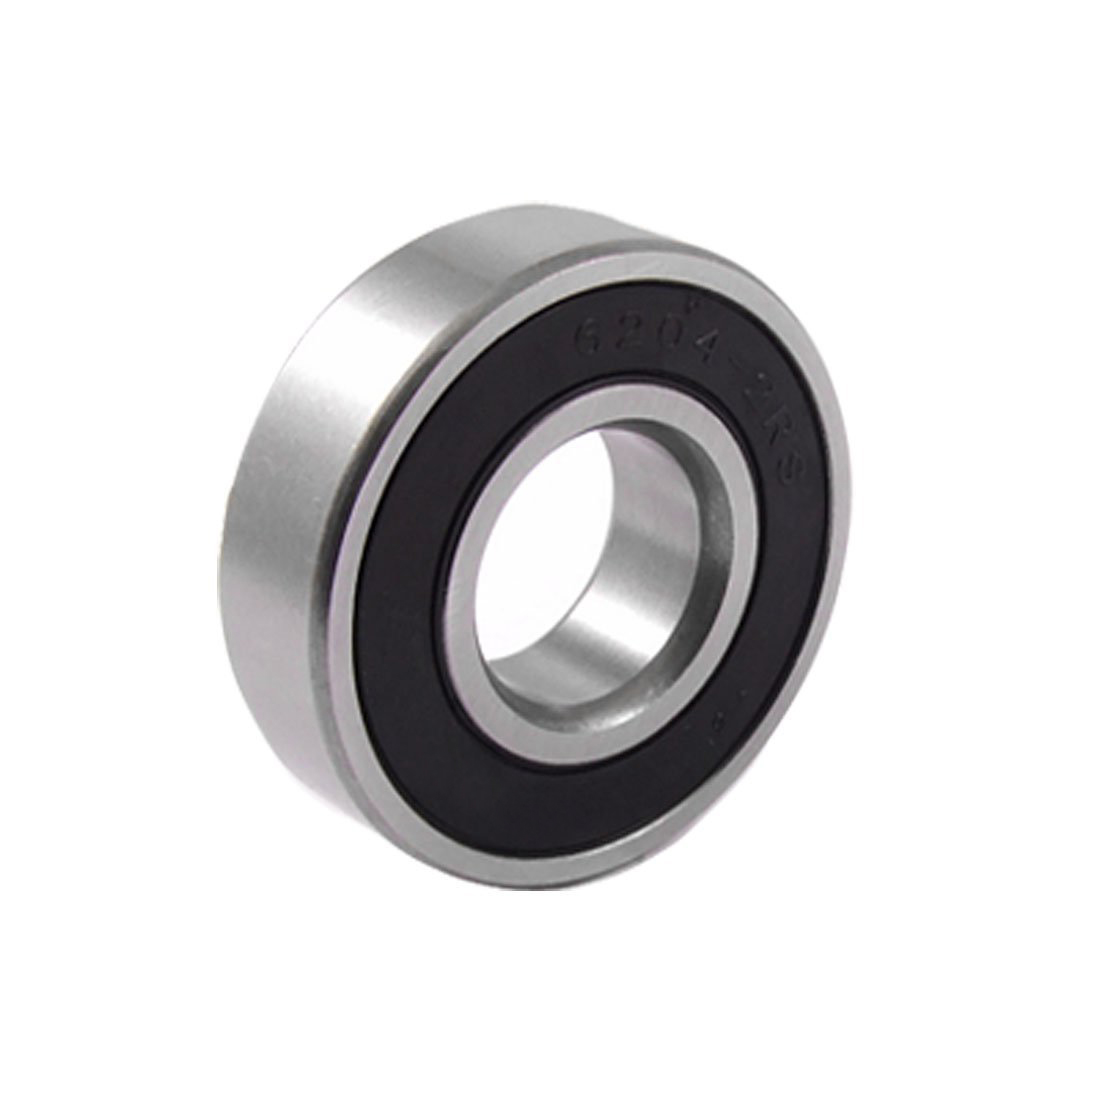 все цены на 6204-2RS 6204 2RS Shield Sealed Ball Bearing 20 x 47 x 14mm онлайн